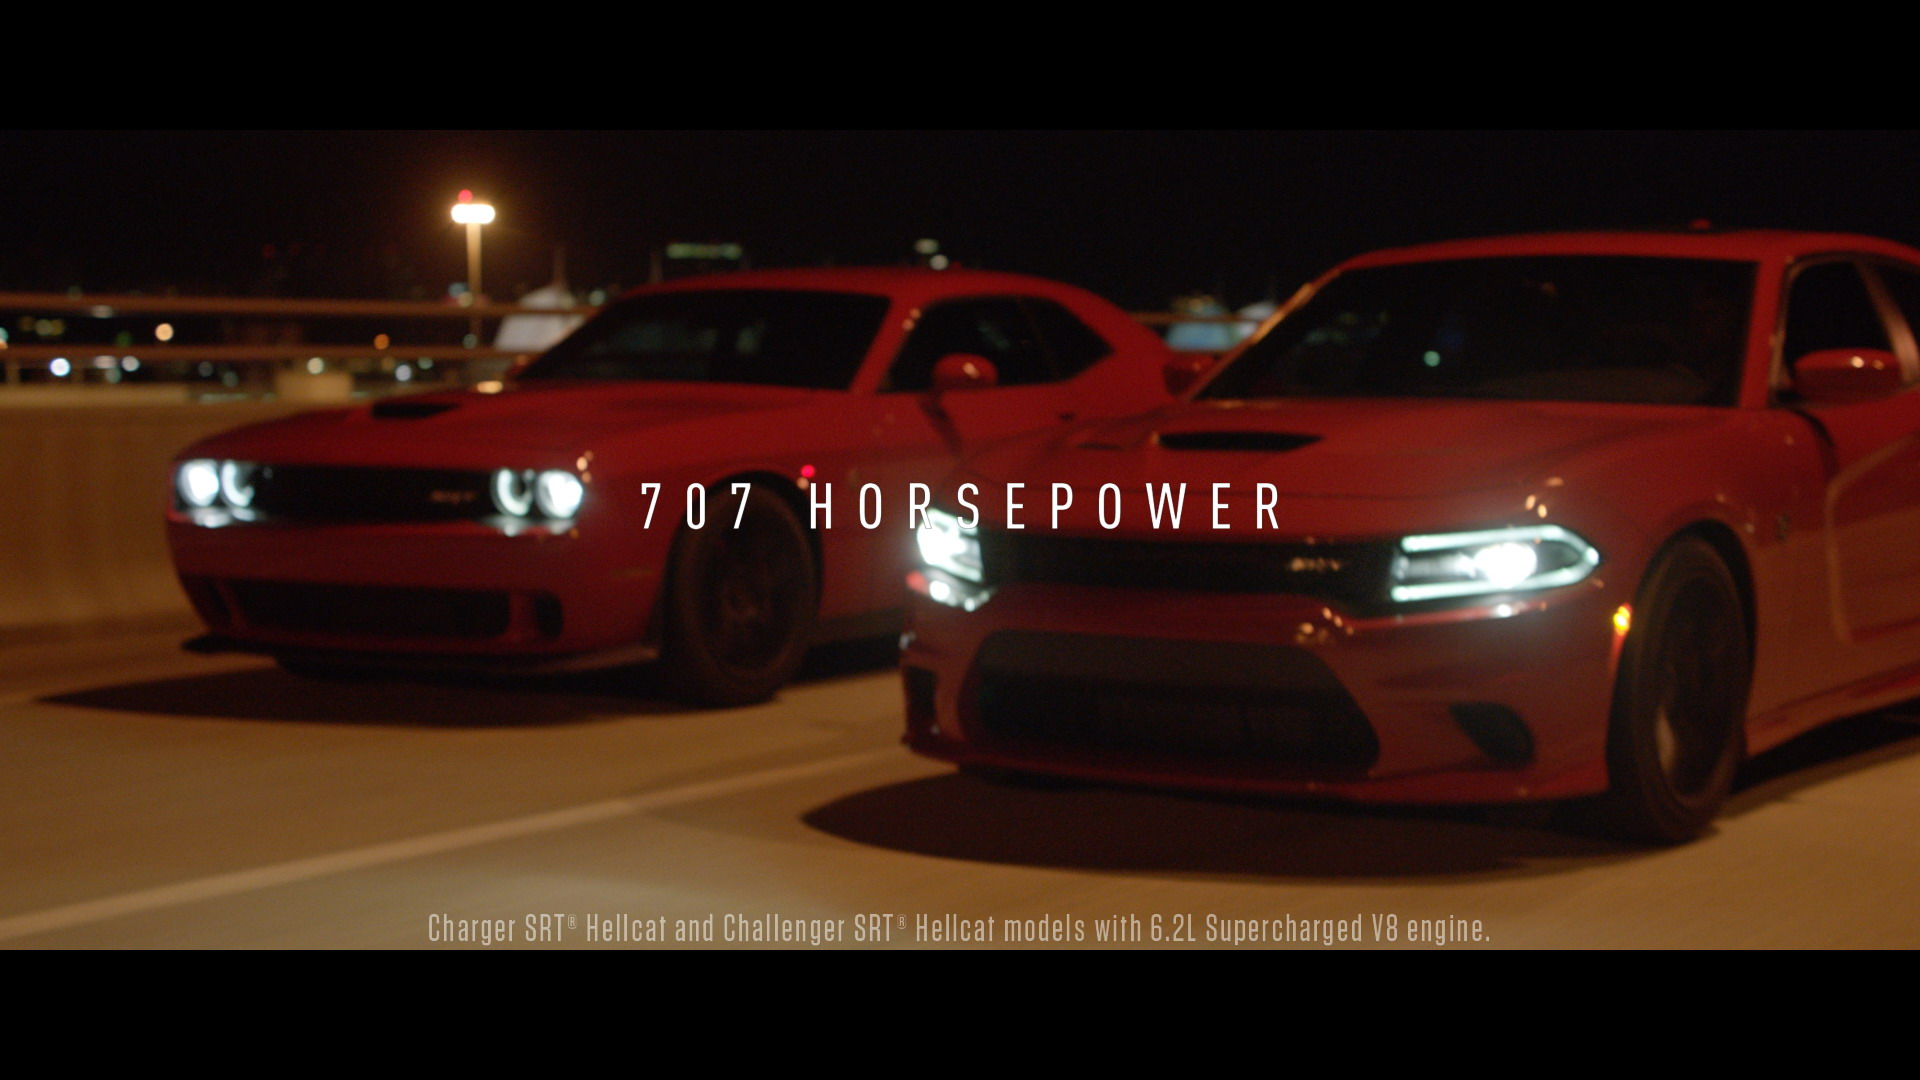 dodge hellcat charger viper hellcats challenger ad srt tv campaign celebrates commercial muscle predators cars freedom wallpapers featuring spot its